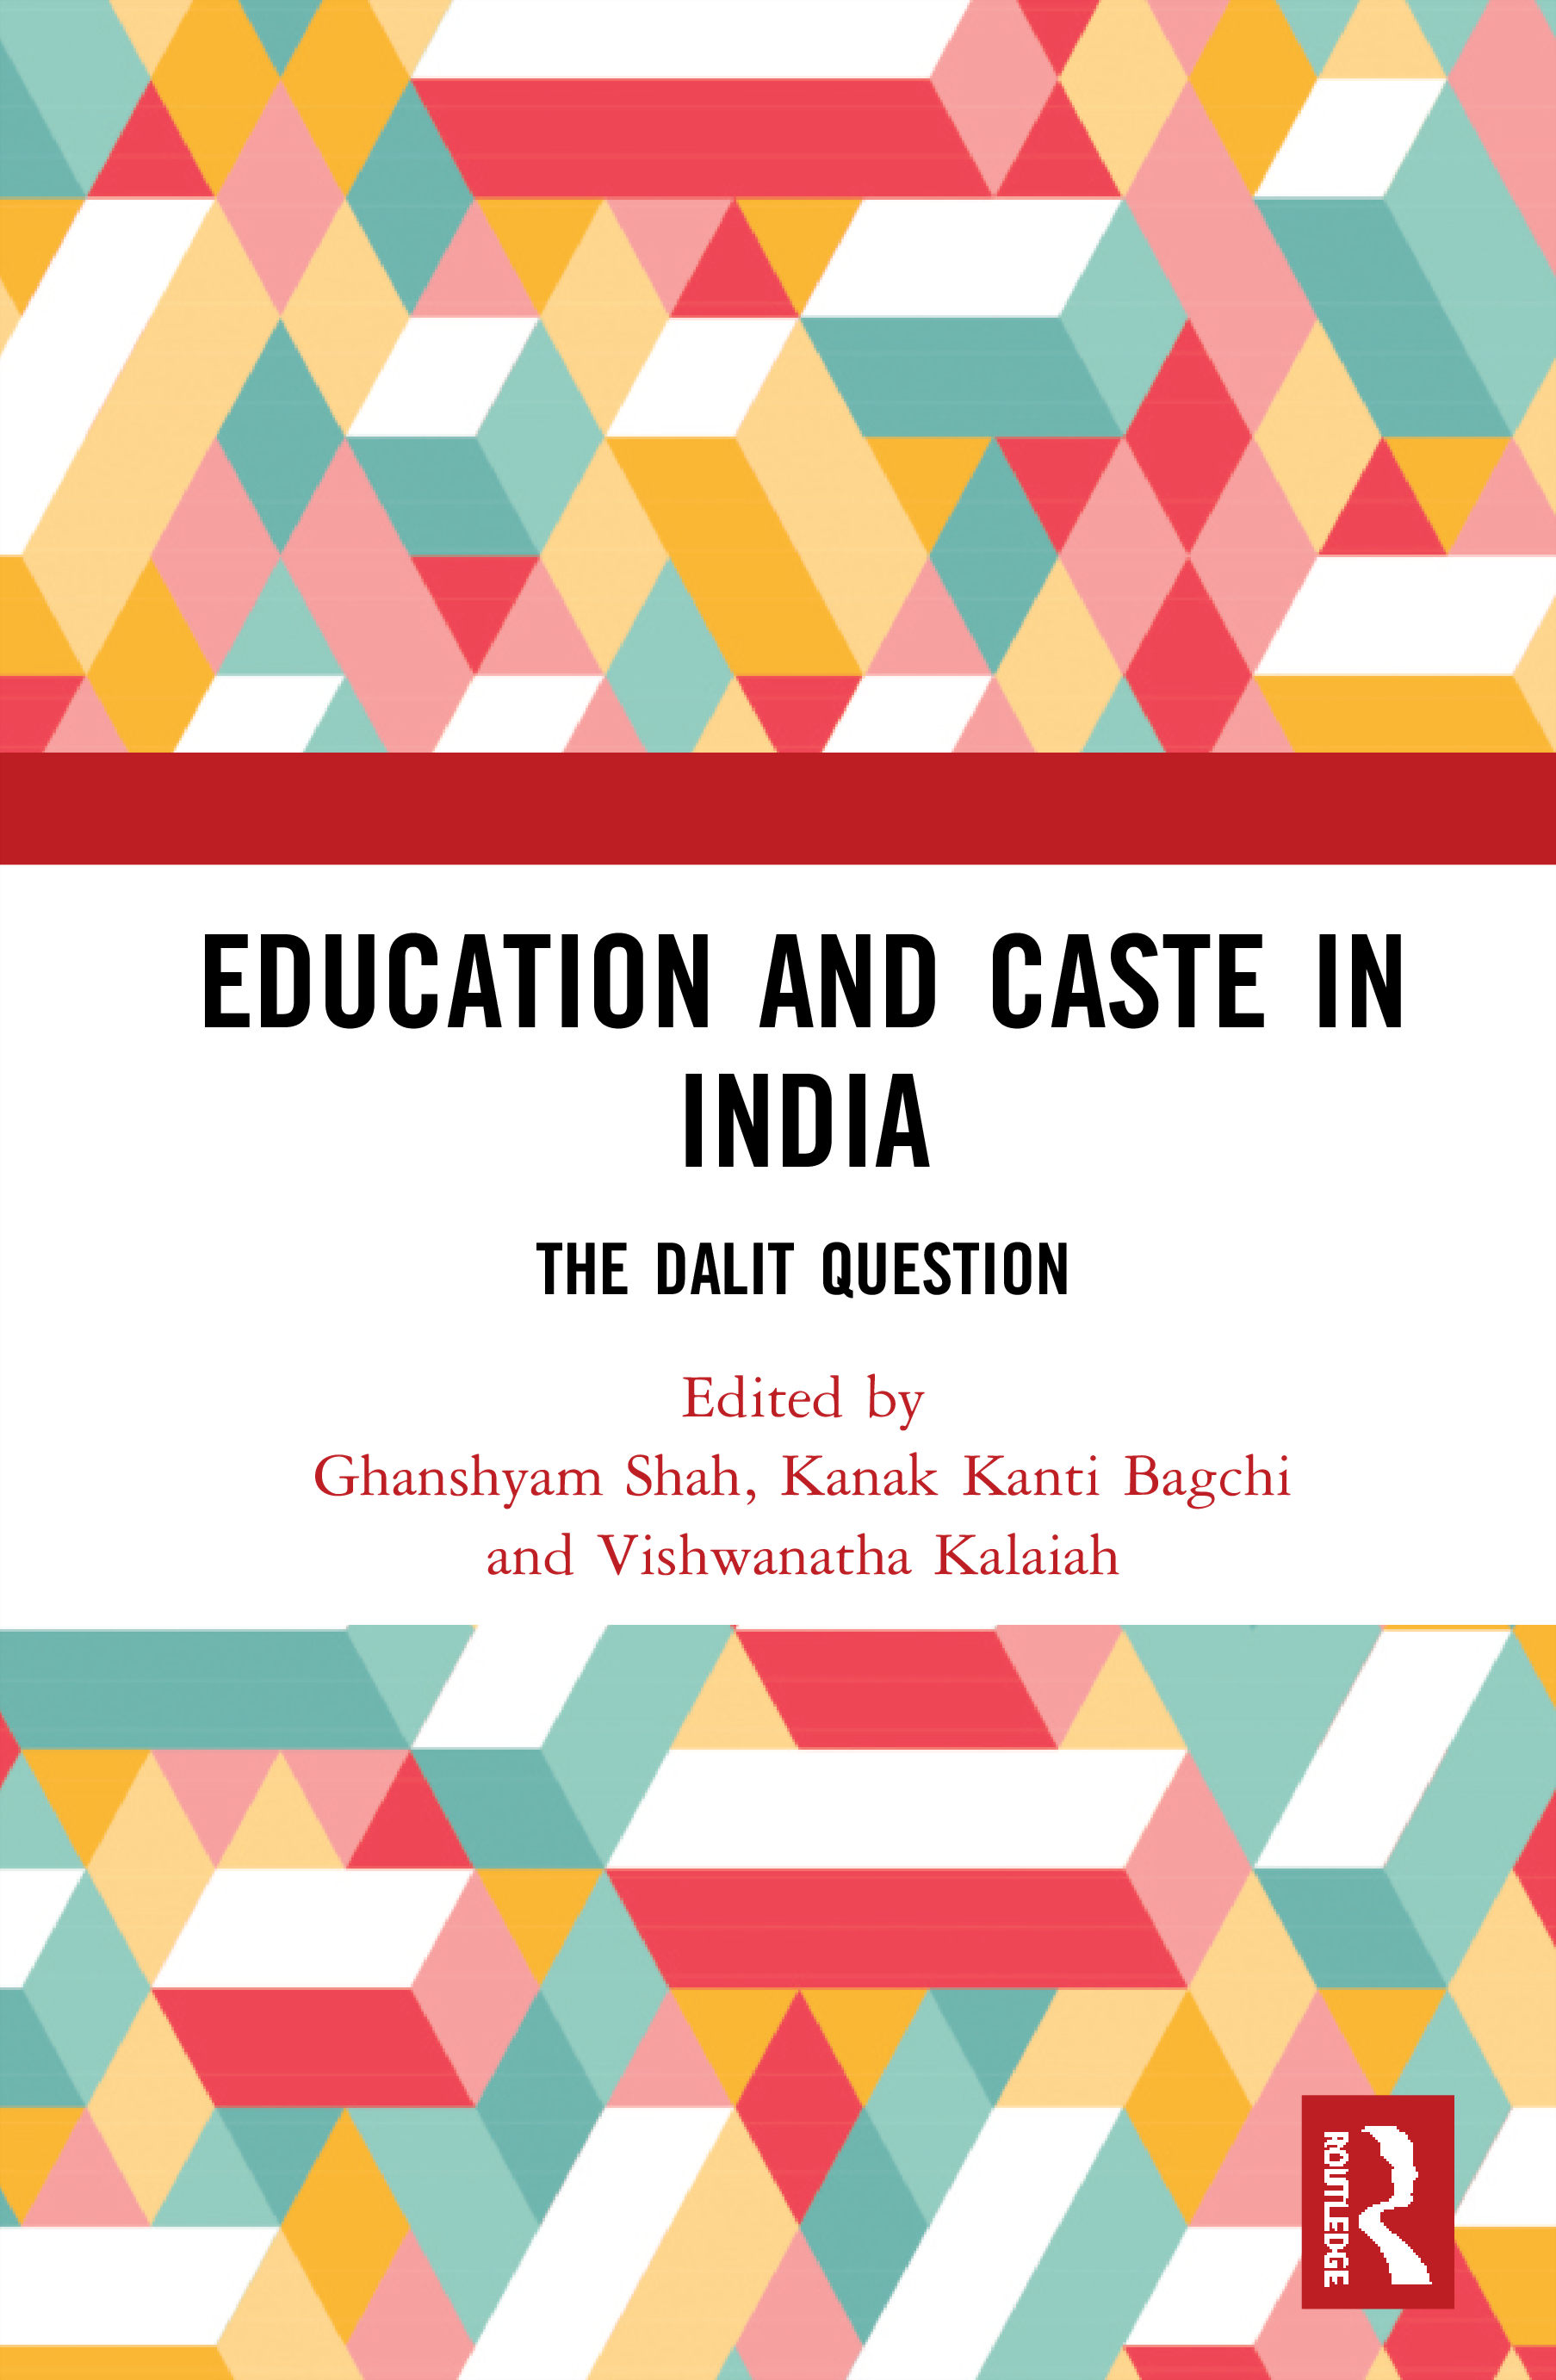 Education and Caste in India: The Dalit Question book cover